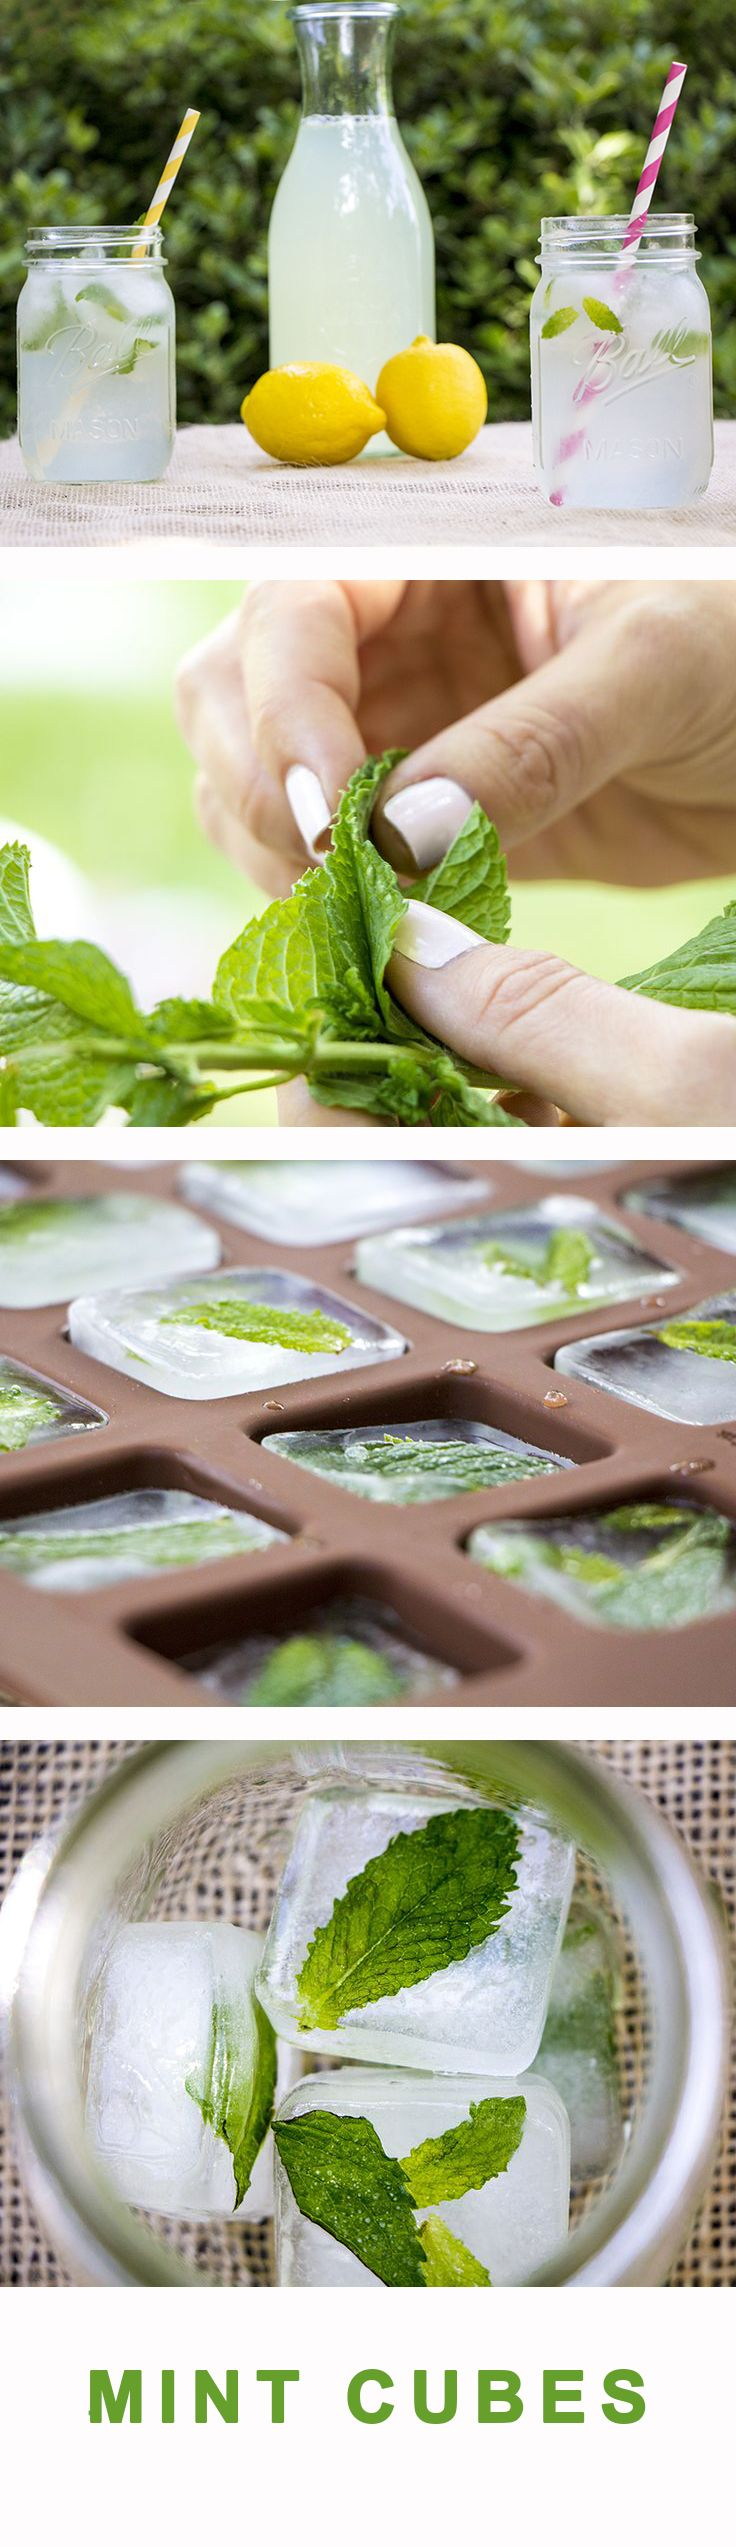 Oh the yumminess: Mint Ice Cubes